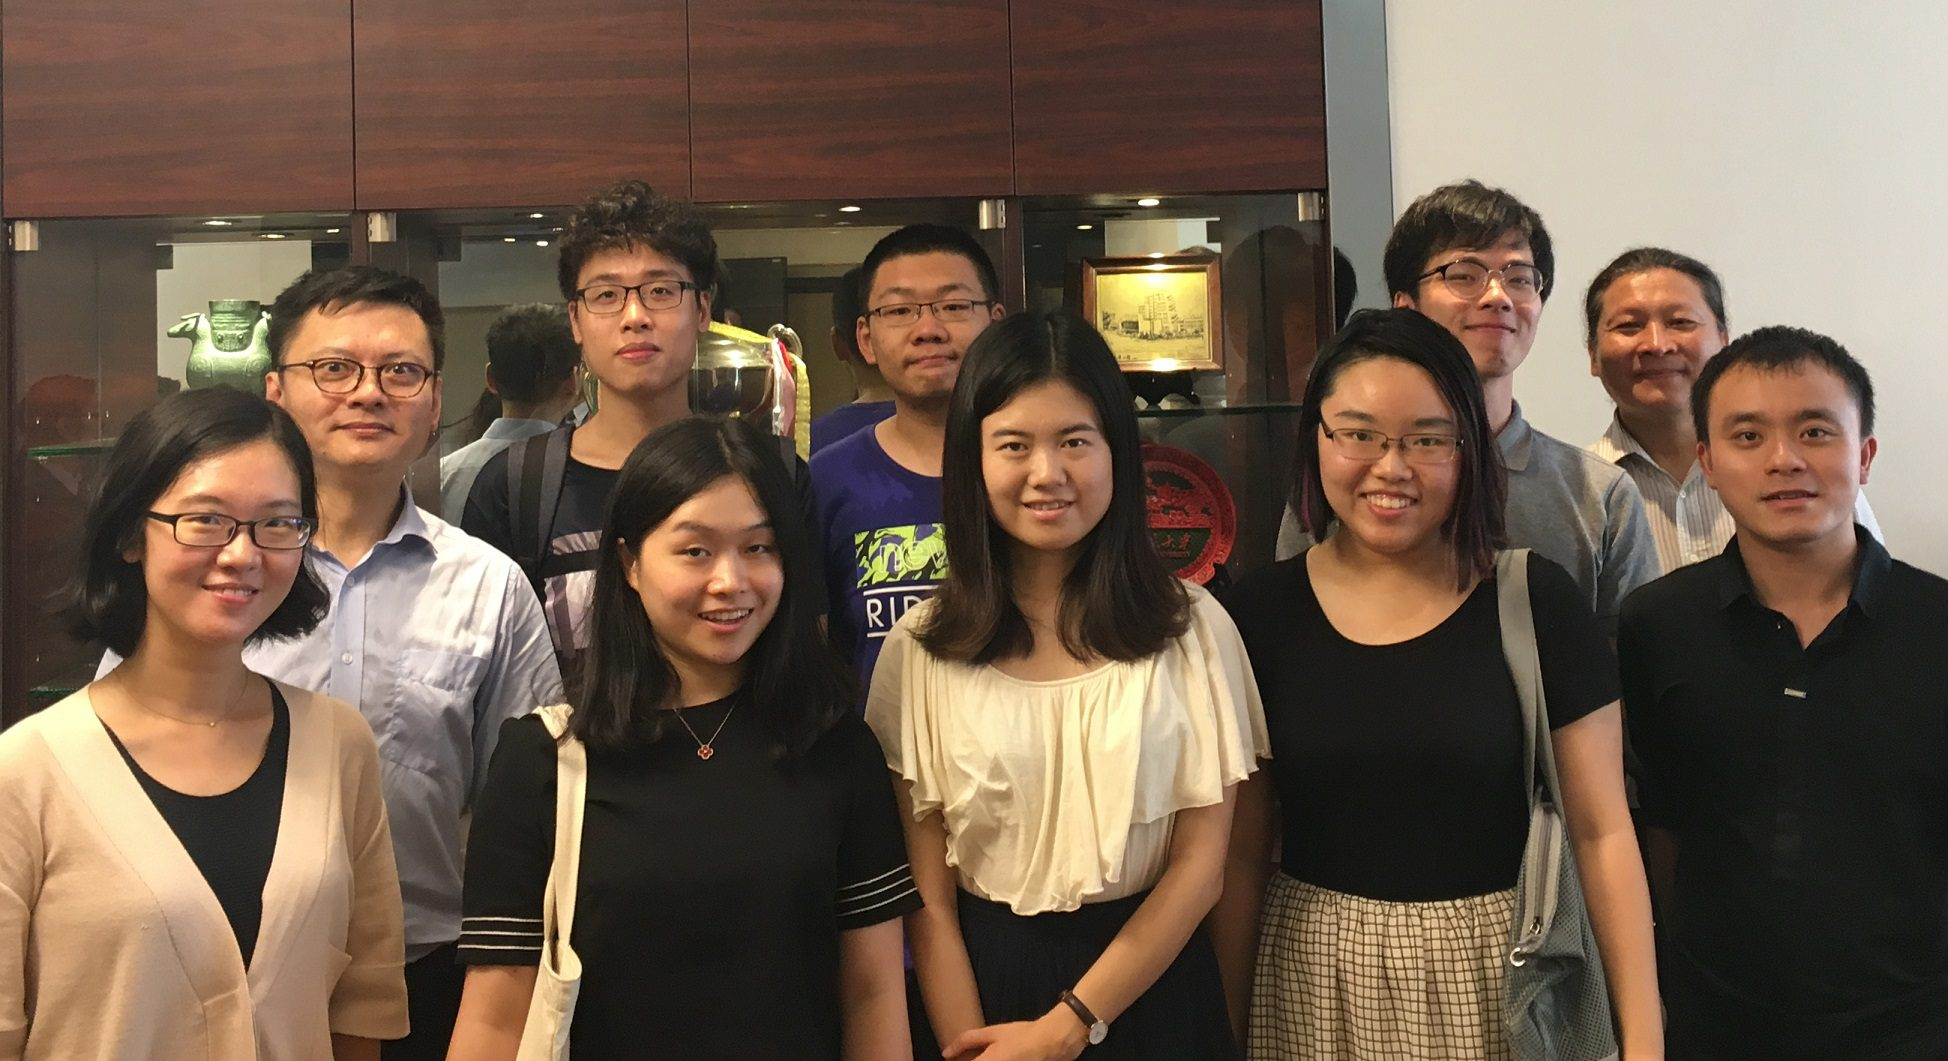 Prof. Stan Fung (second from the left) and incoming Research Postgraduate Students 2017-18